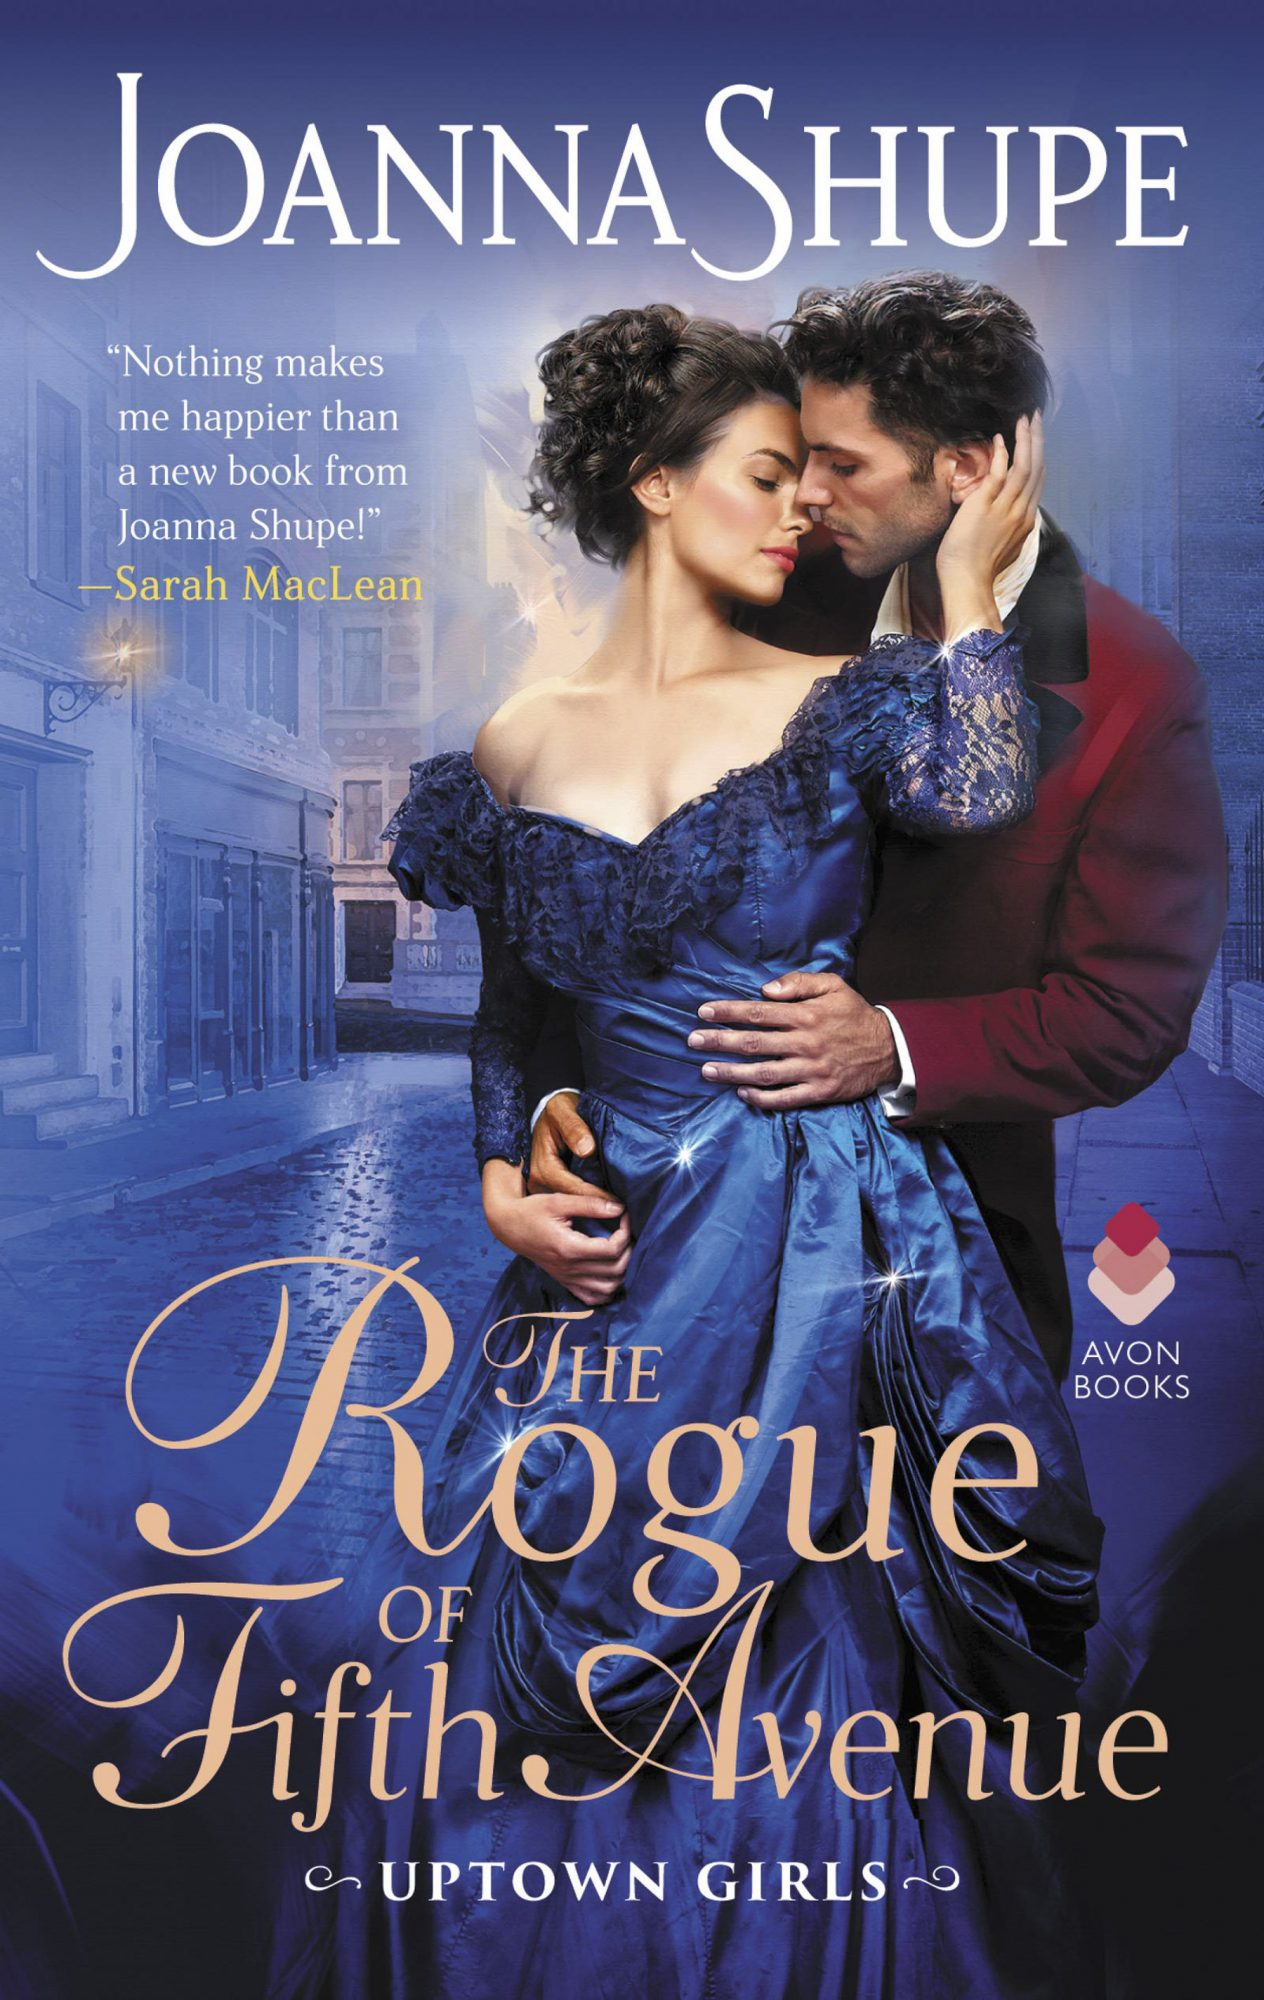 The Rogue of Fifth Avenue (Uptown Girls, #1) by Joanna Shupe CR: Avon